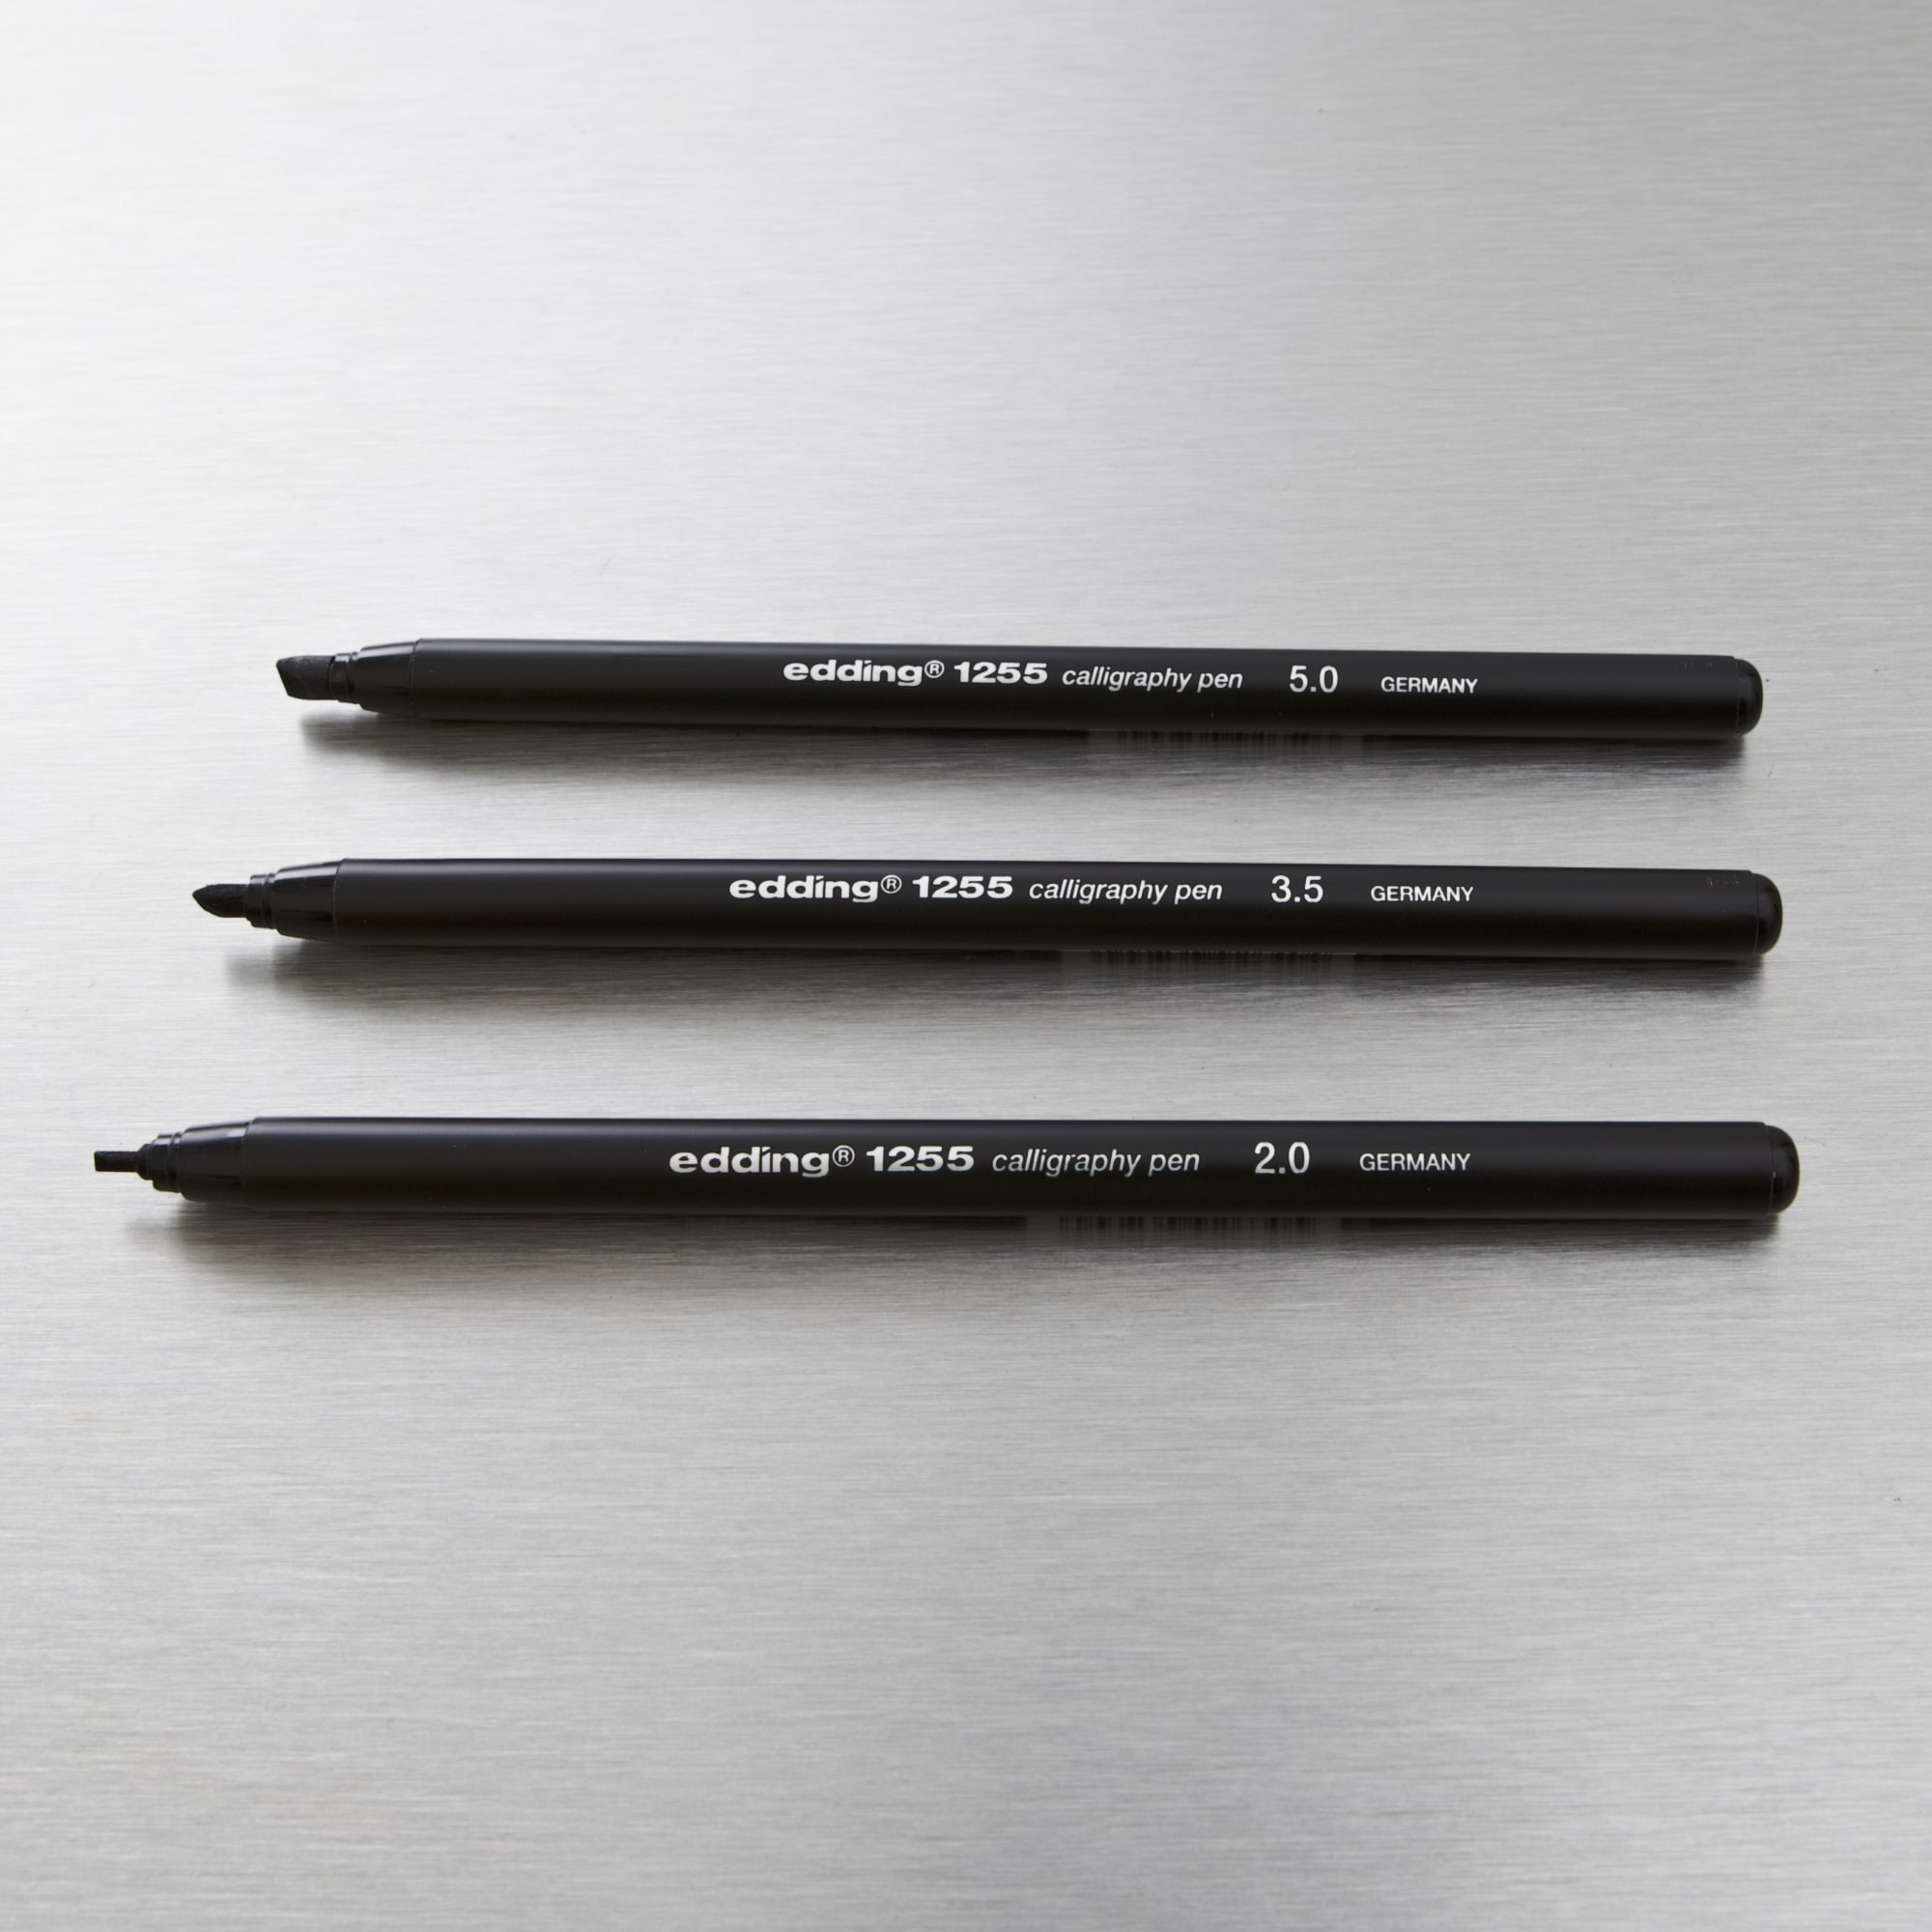 Edding calligraphy pen set of pens